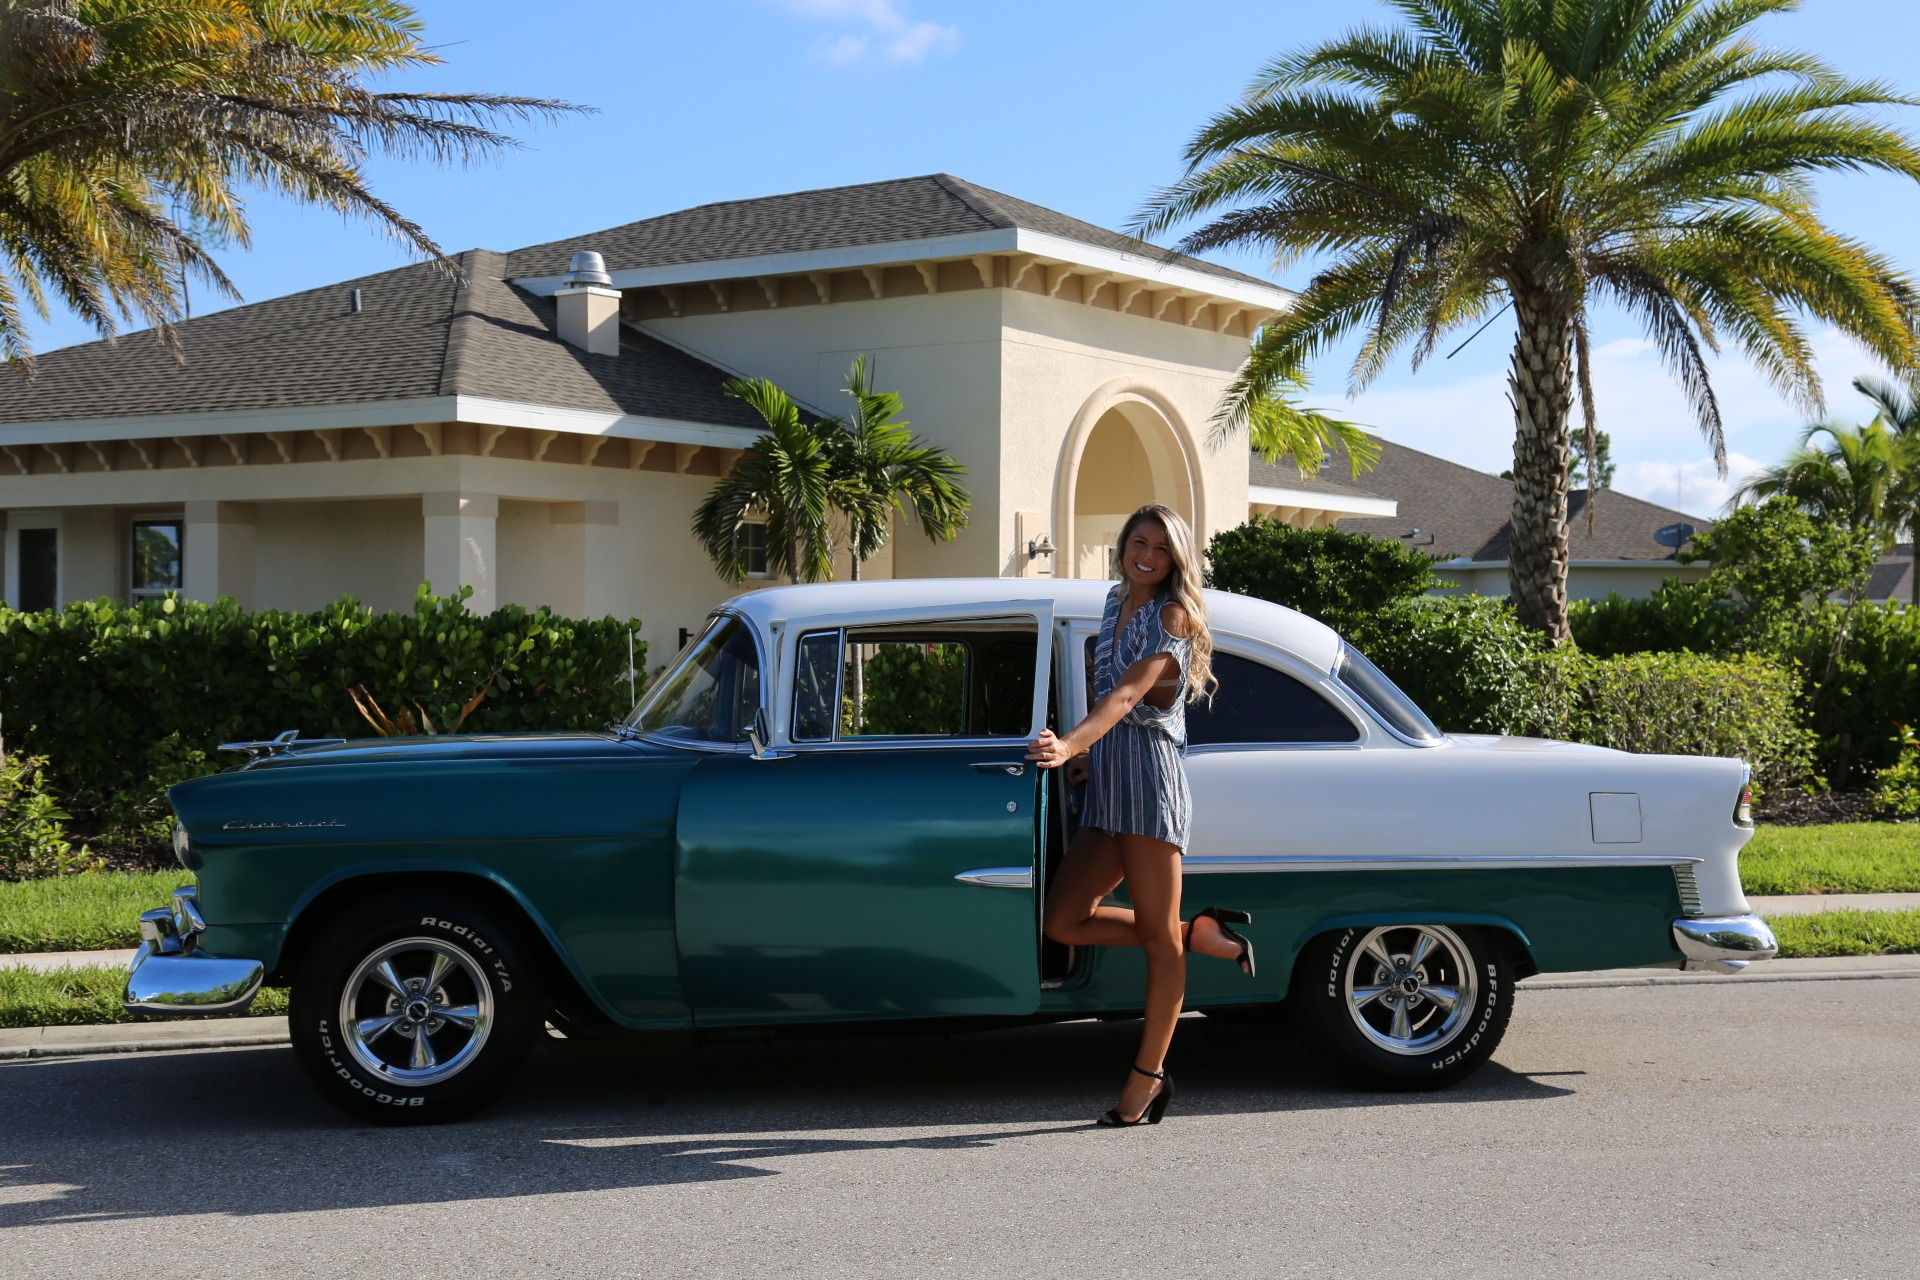 Used 1955 Chevy Bel Air BelAir for sale Sold at Muscle Cars for Sale Inc. in Fort Myers FL 33912 1